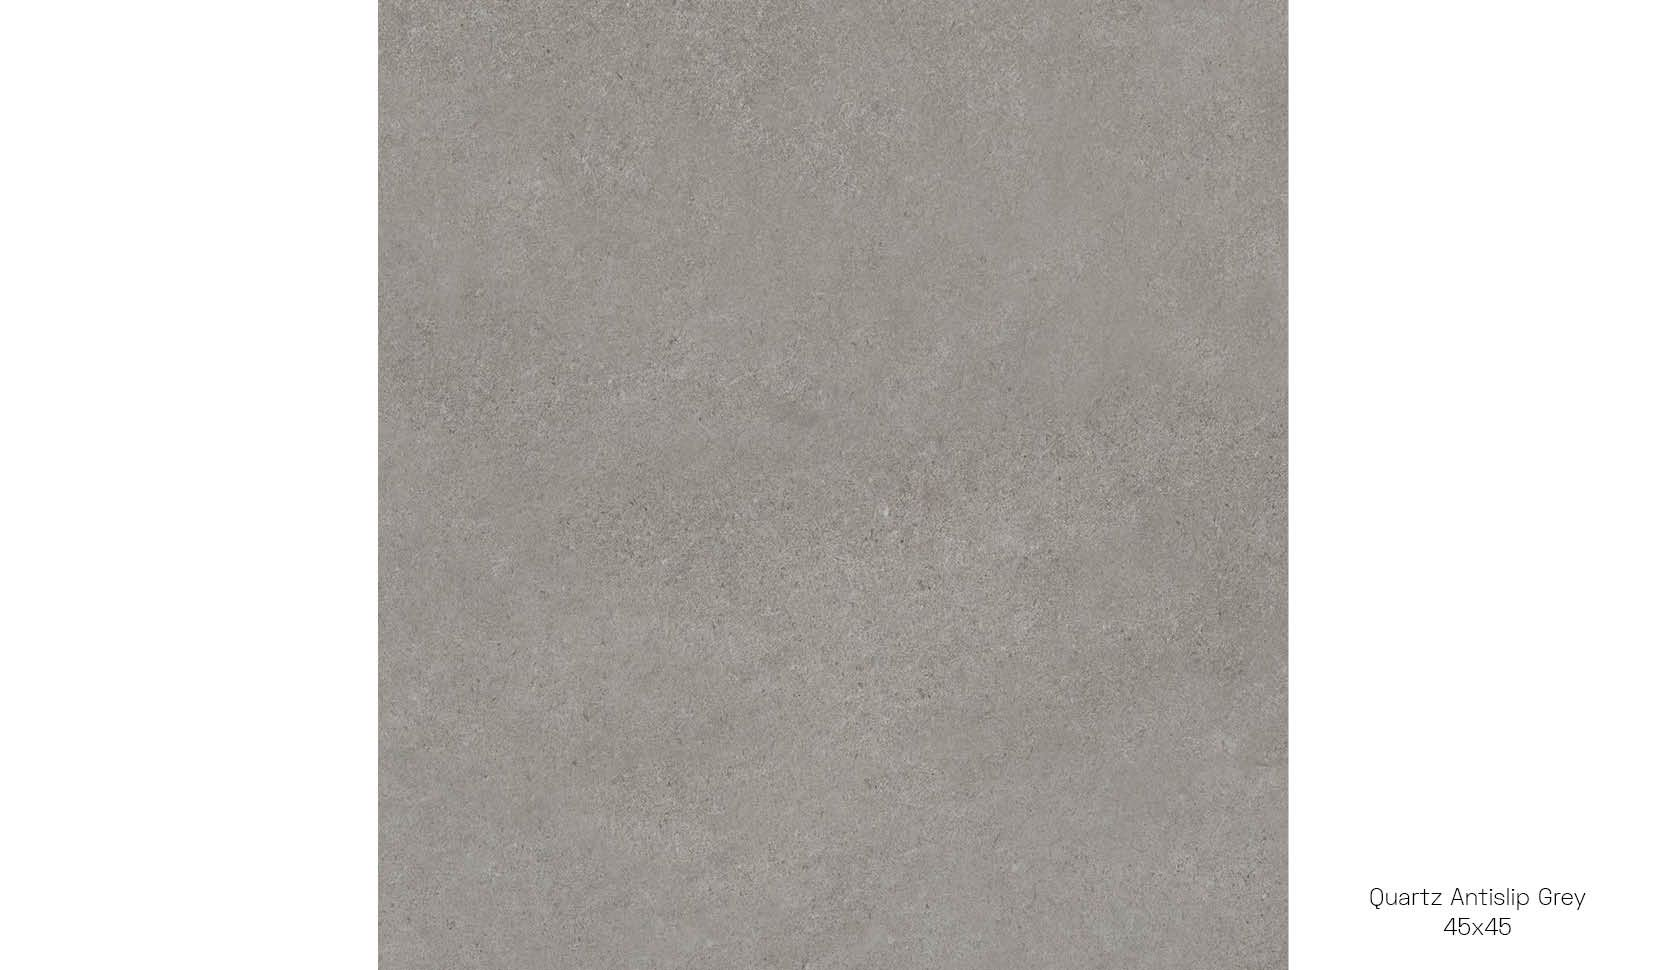 Quartz antislip grey 45 x 45